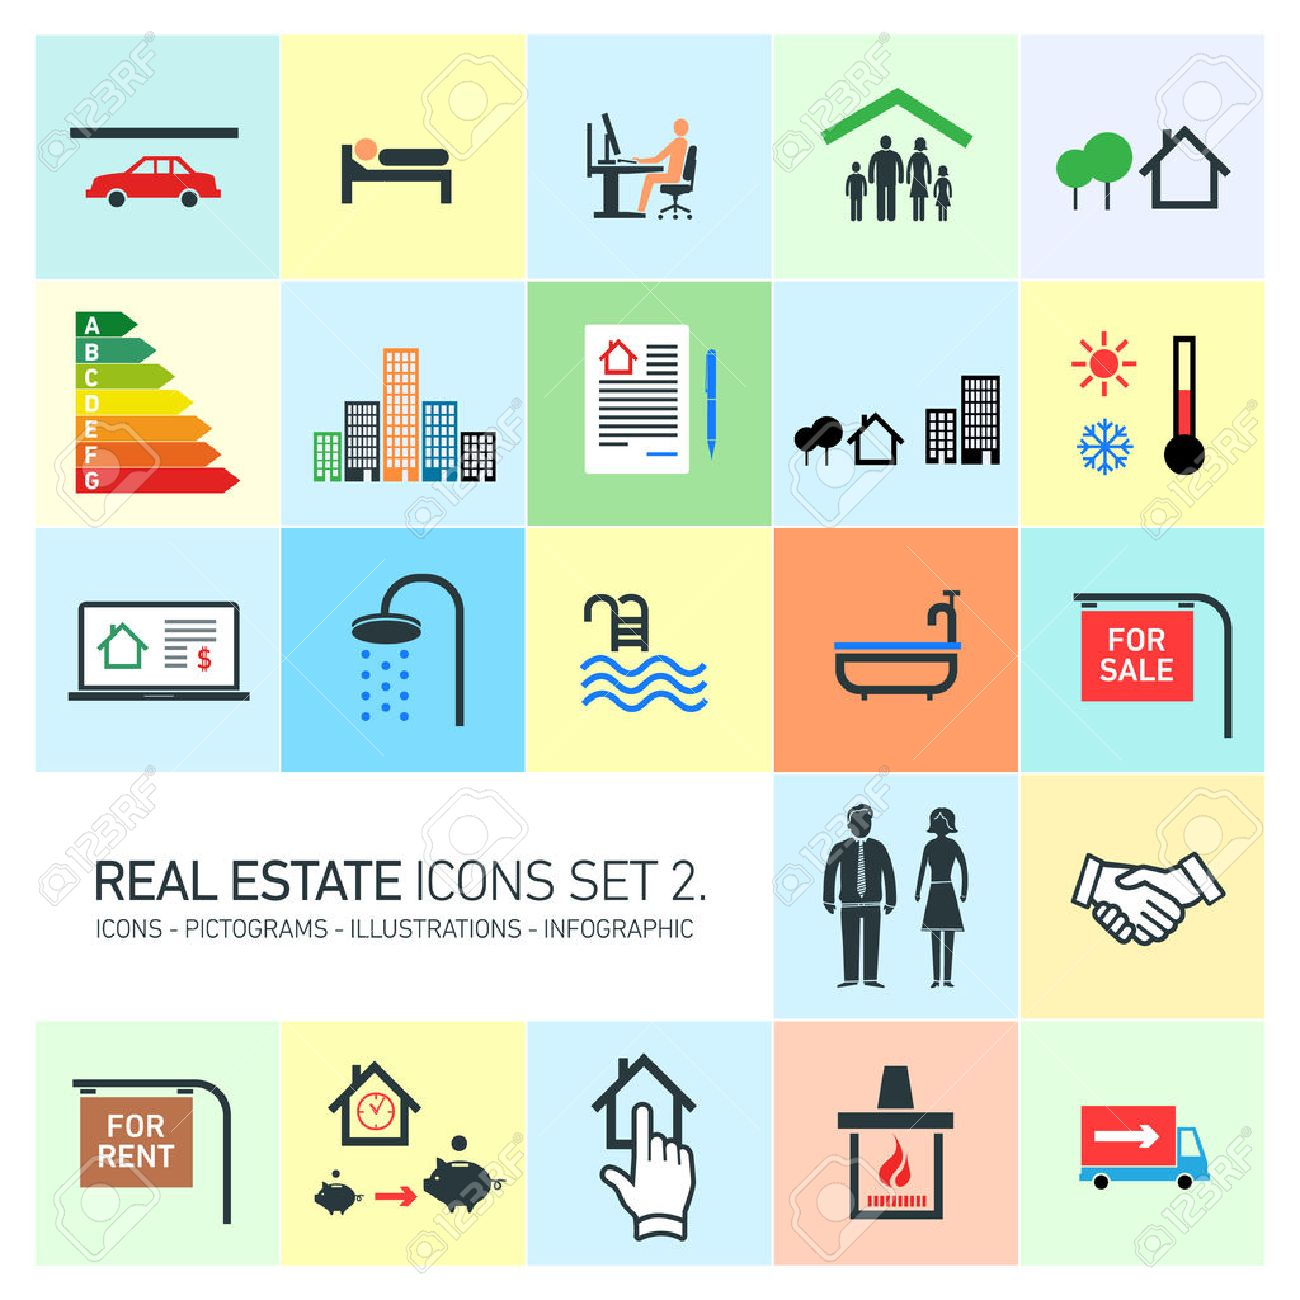 vector real estate icons set modern flat design pictograms on colorful background - 29109875